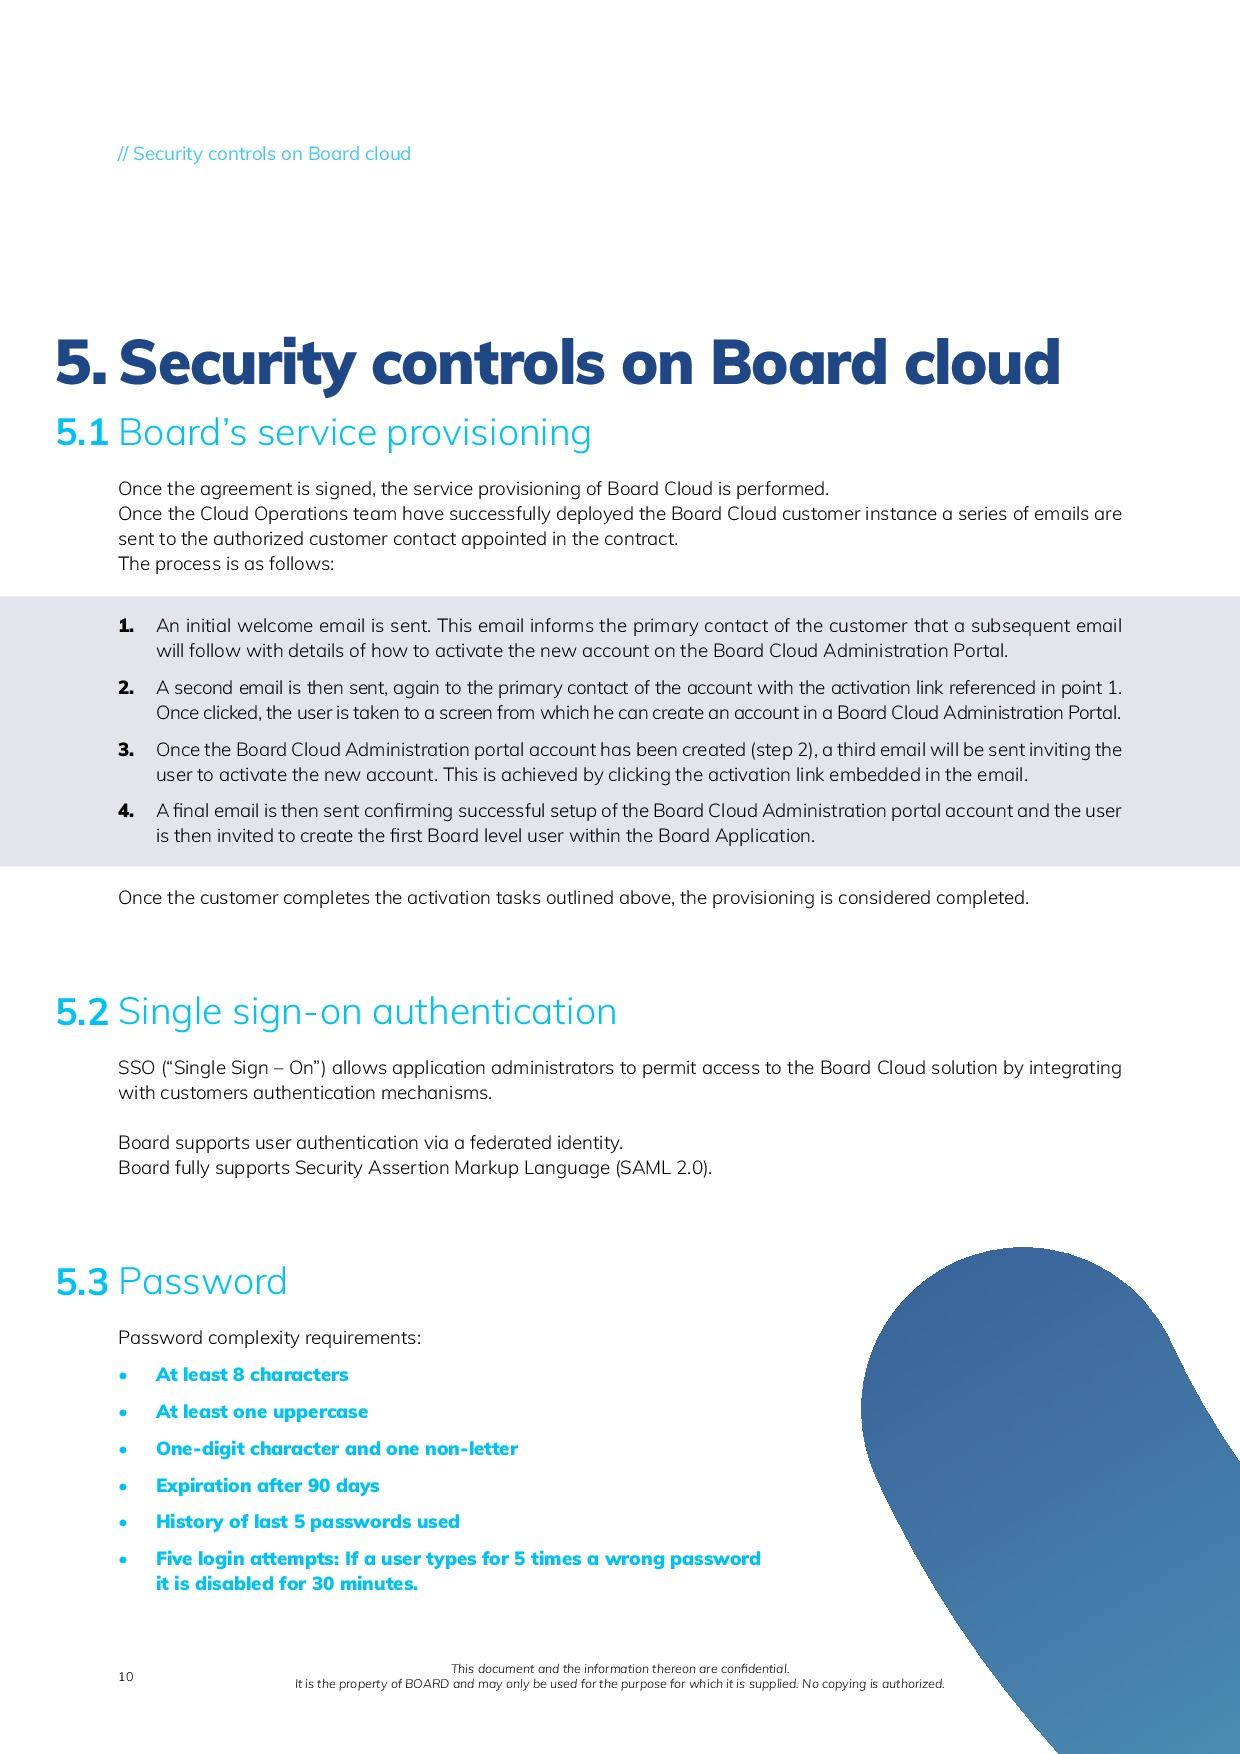 Board Cloud Security Overview | Page 10